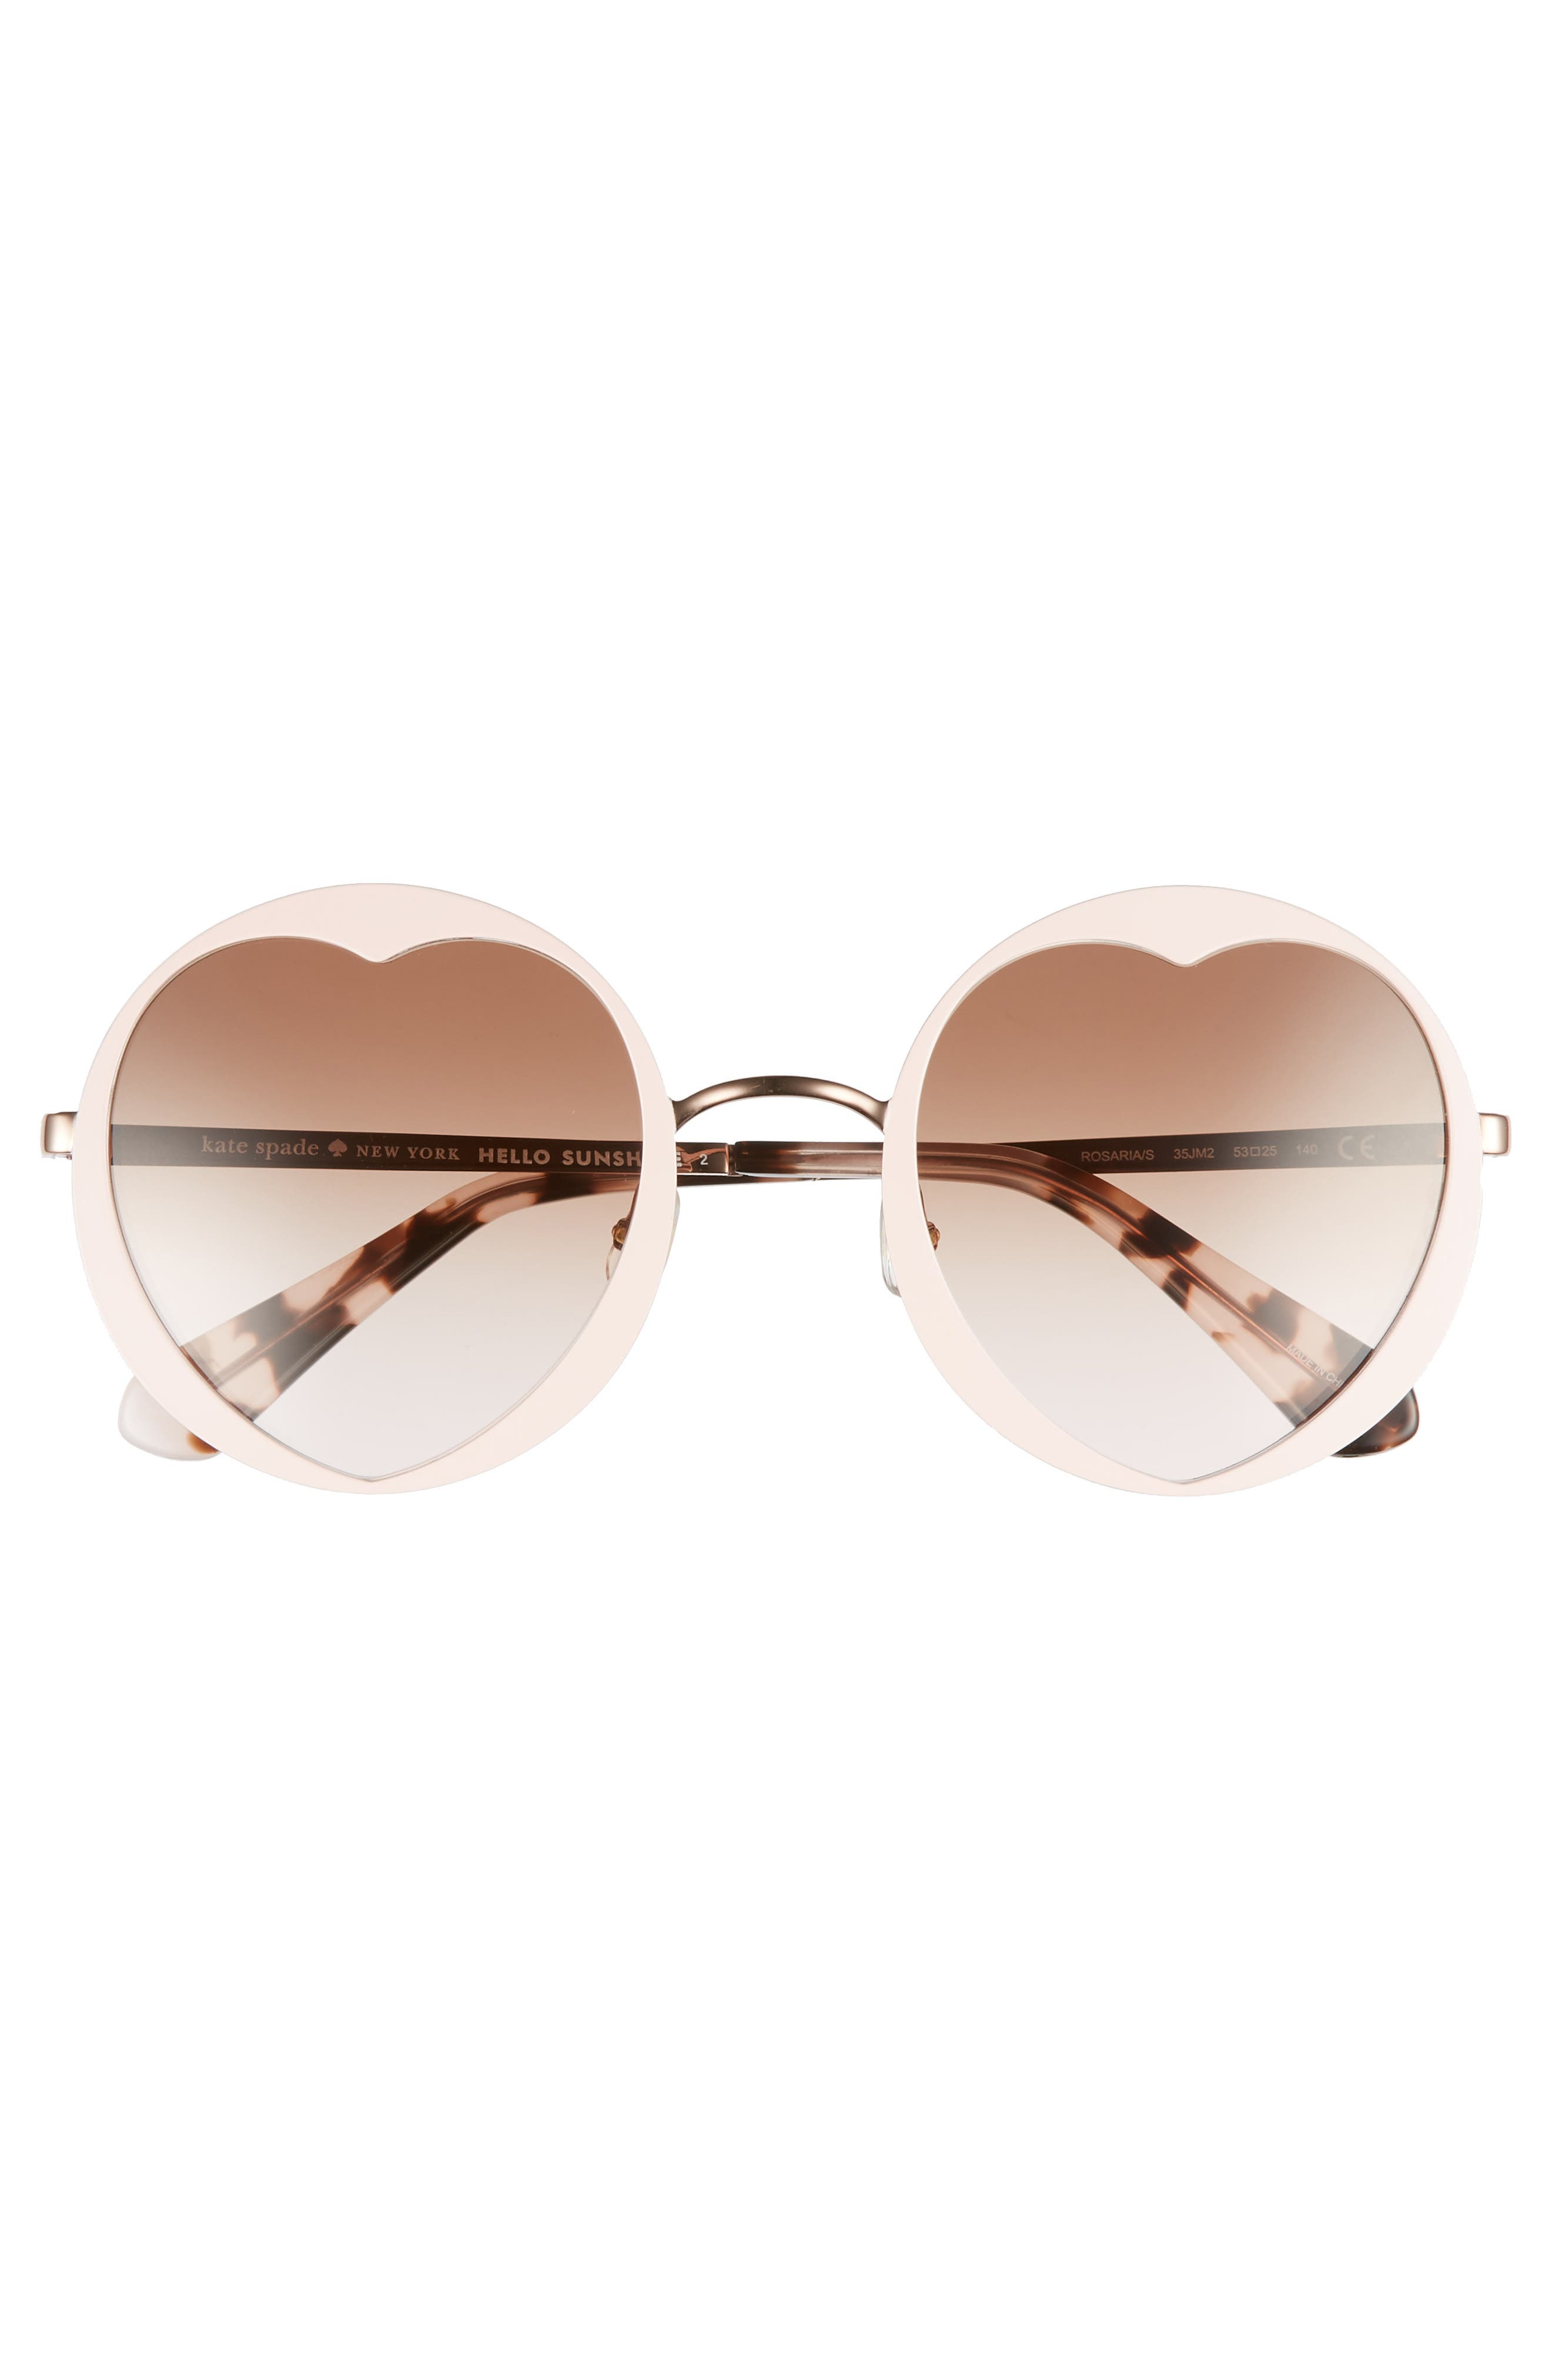 rosaria 53mm heart cutout lens sunglasses,                             Alternate thumbnail 3, color,                             Pink/ Havana